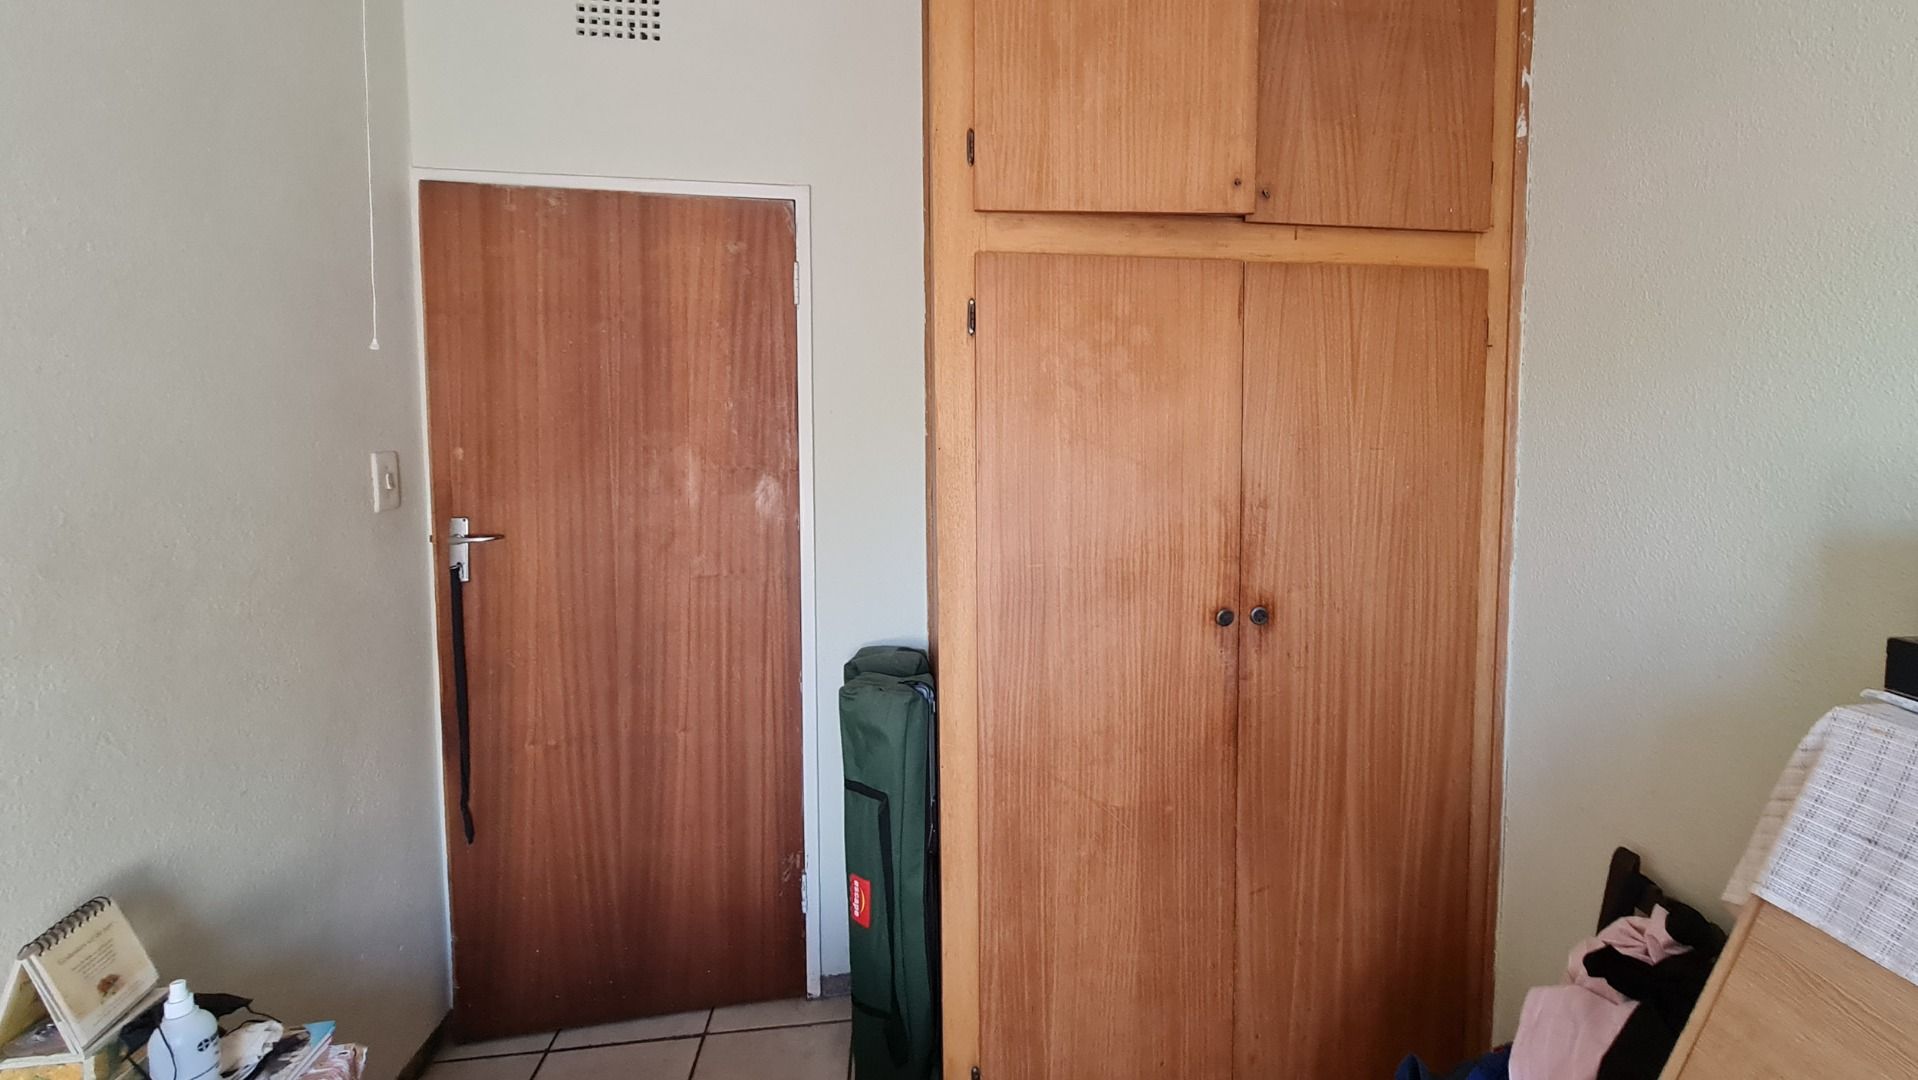 4 Bedroom House For Sale in Mineralia